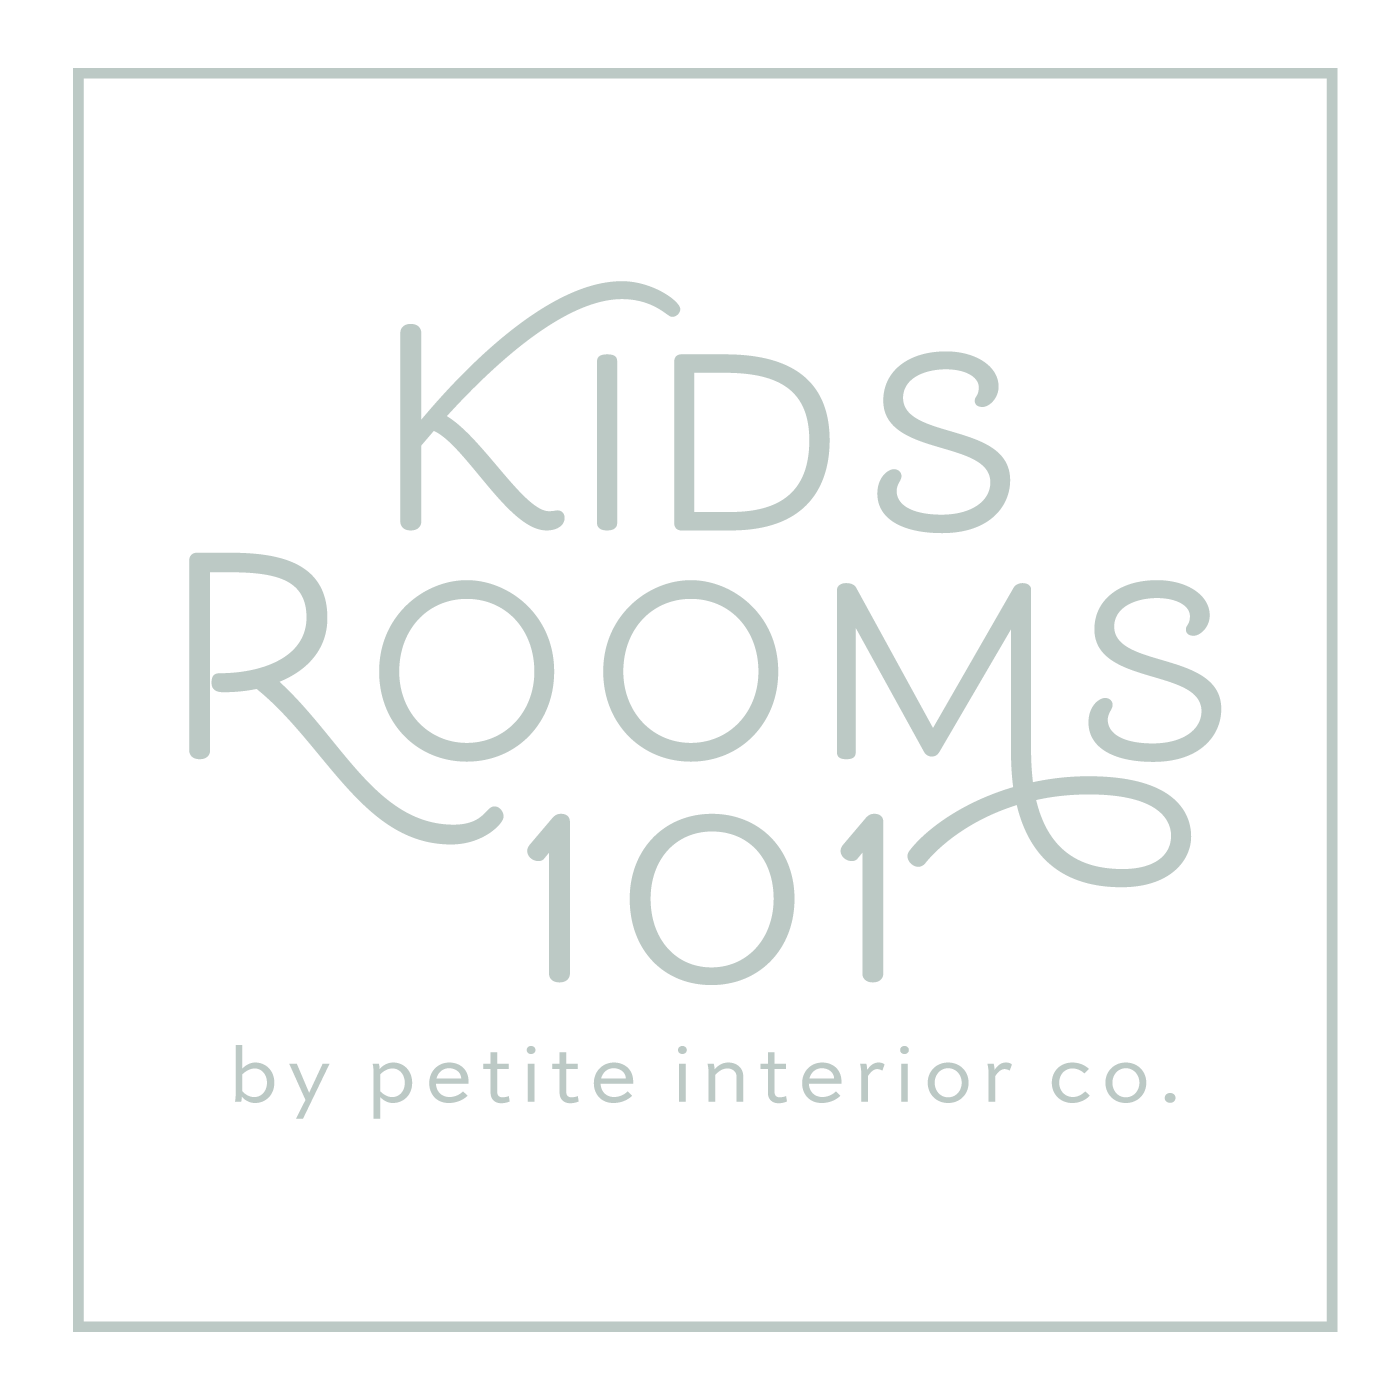 Kids Rooms 101 Logo